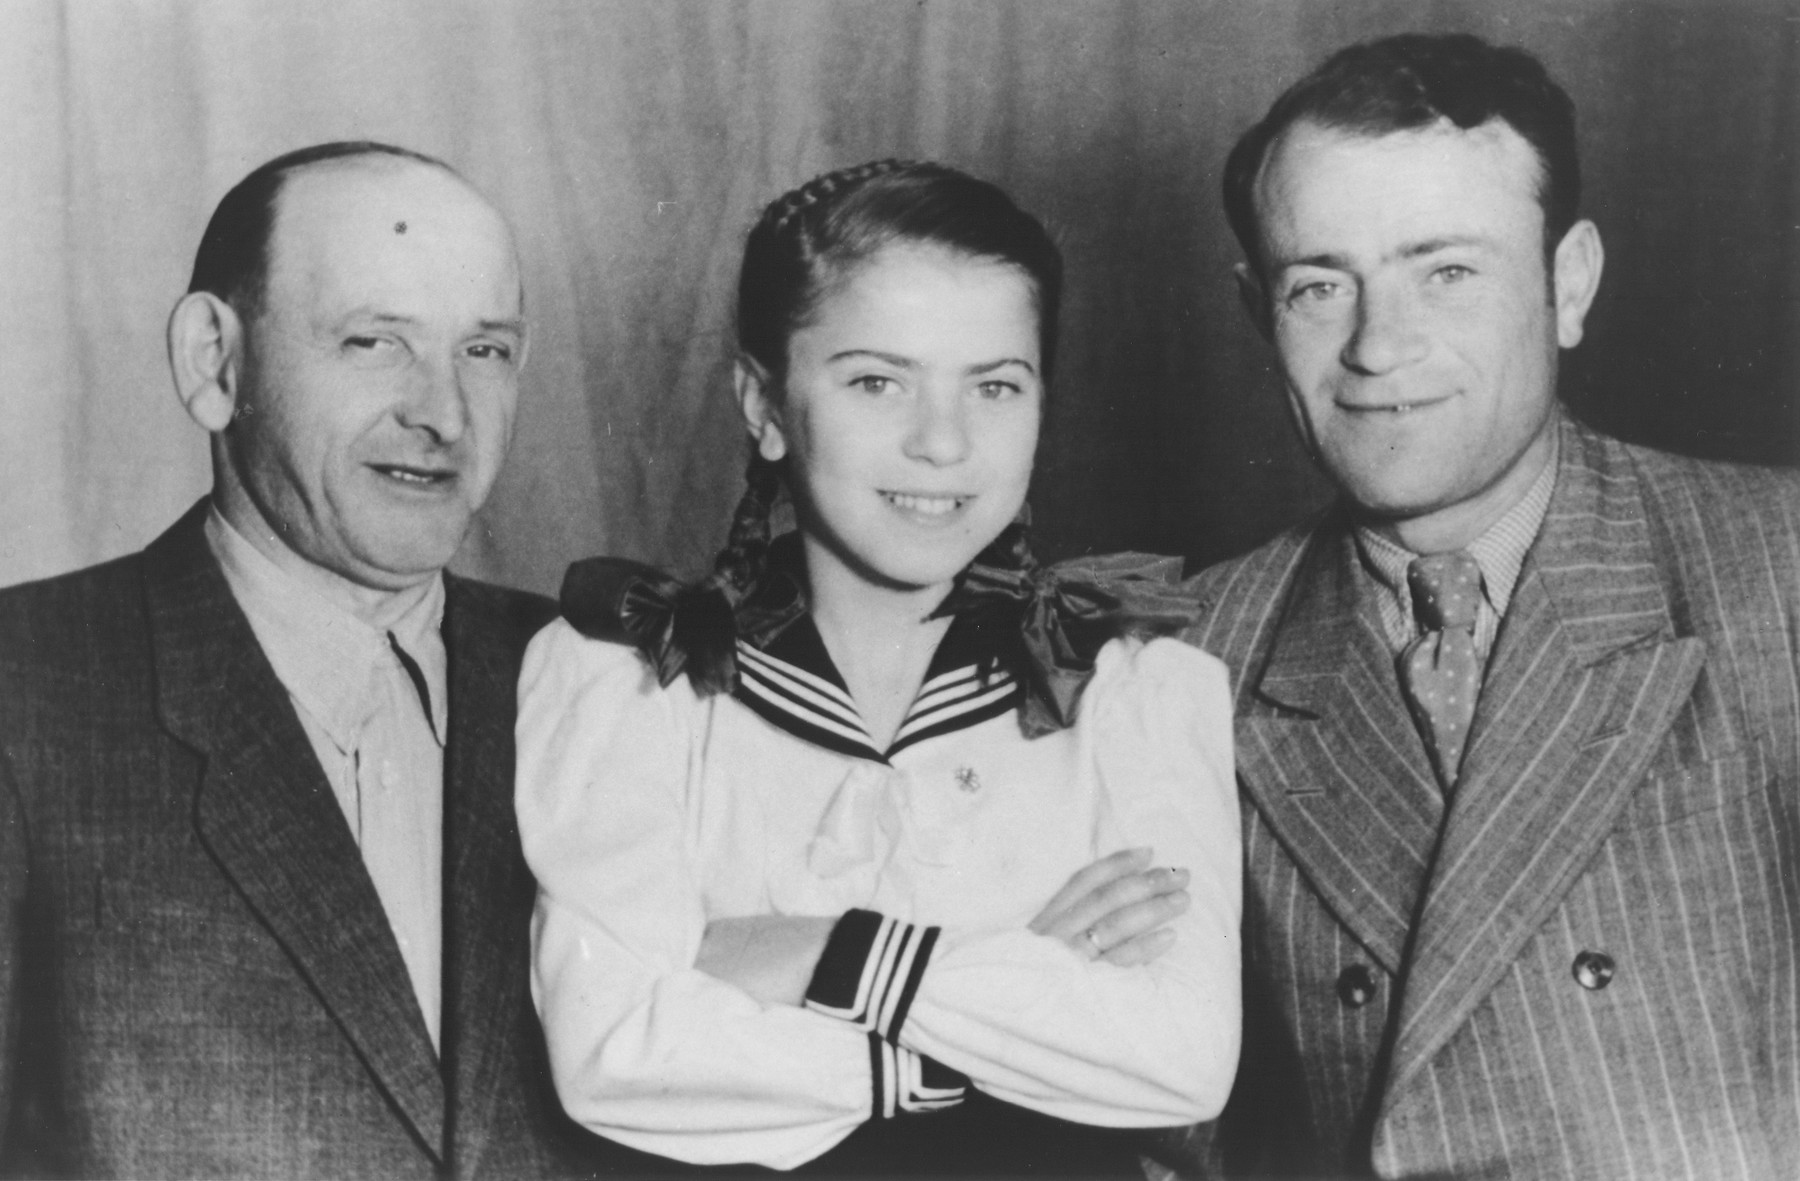 Chuma Rendler poses with her father Anchel and his cousin Israel Shusterkatz in a studio photo in the Tempelhof DP camp.